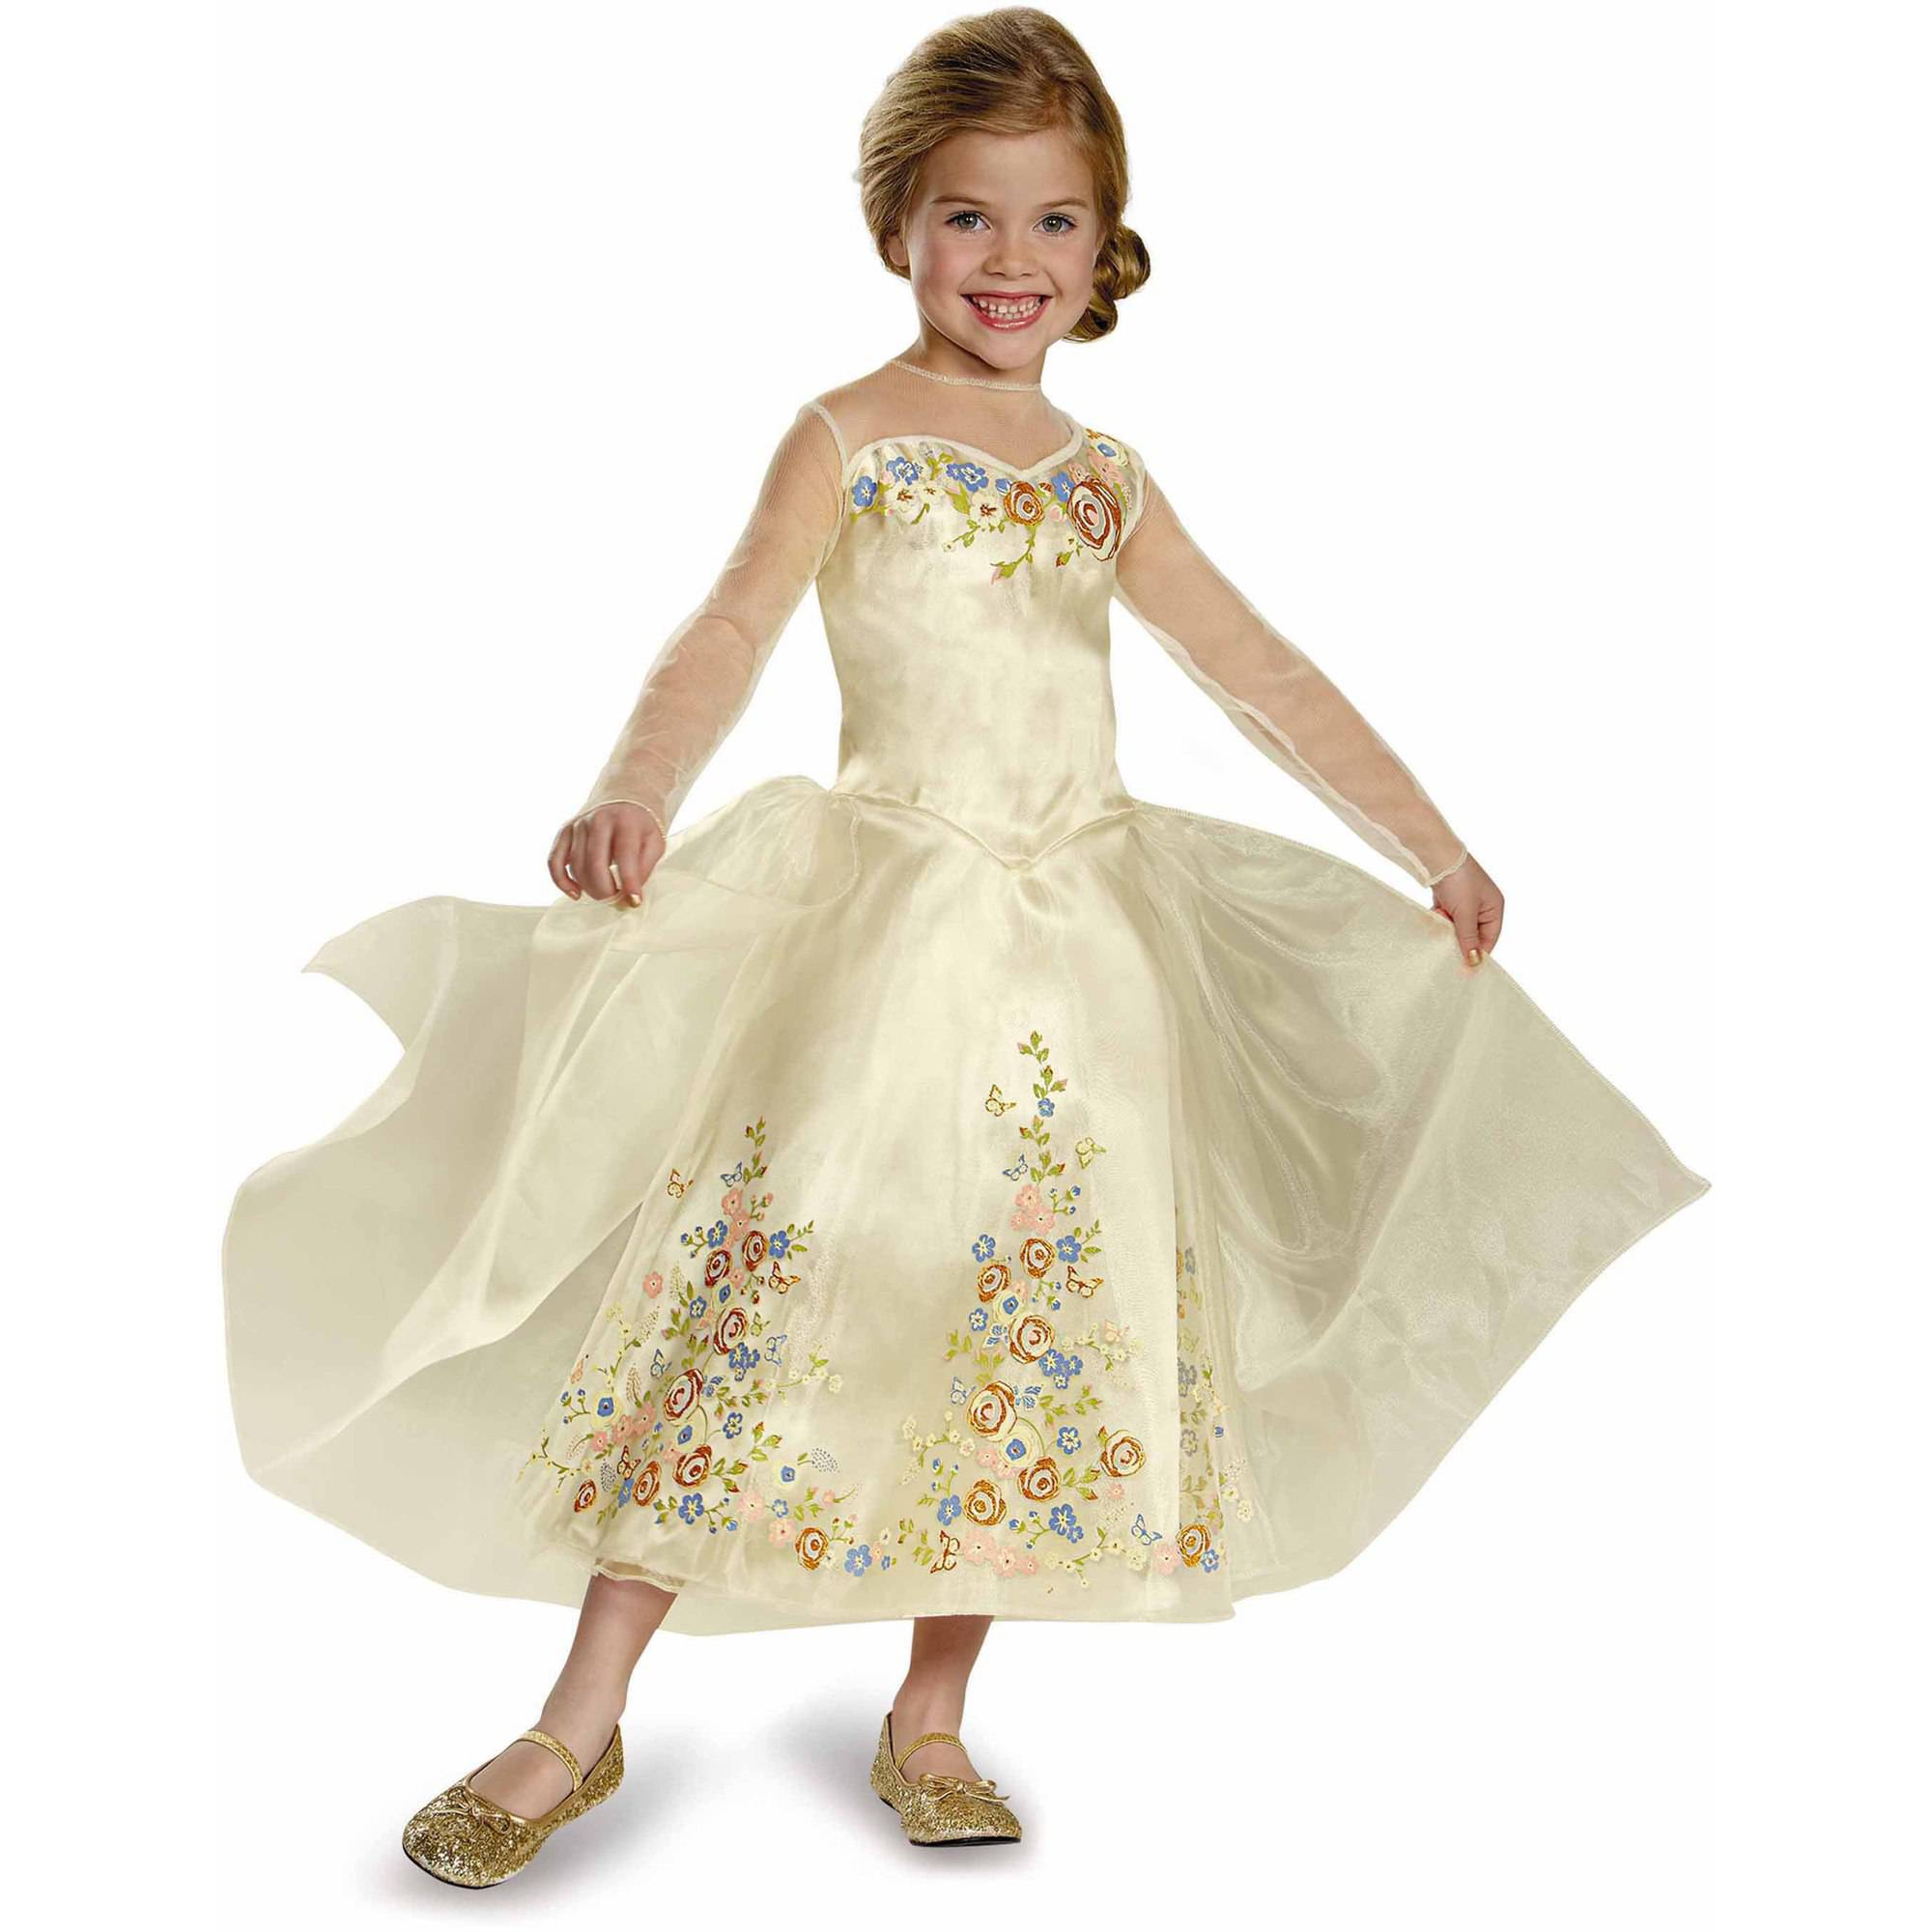 Cinderella Movie Cinderella Wedding Dress Deluxe Child Halloween ...